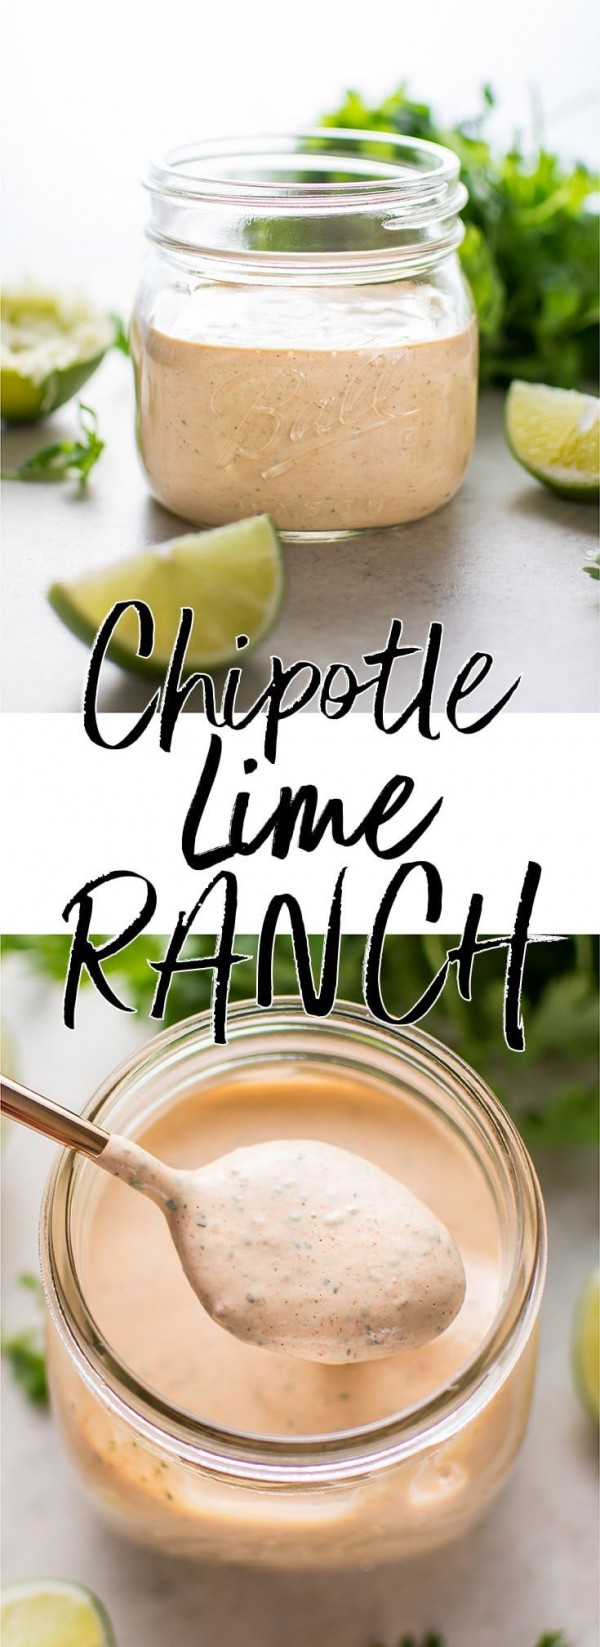 Get the recipe Chipotle Lime Ranch @recipes_to_go